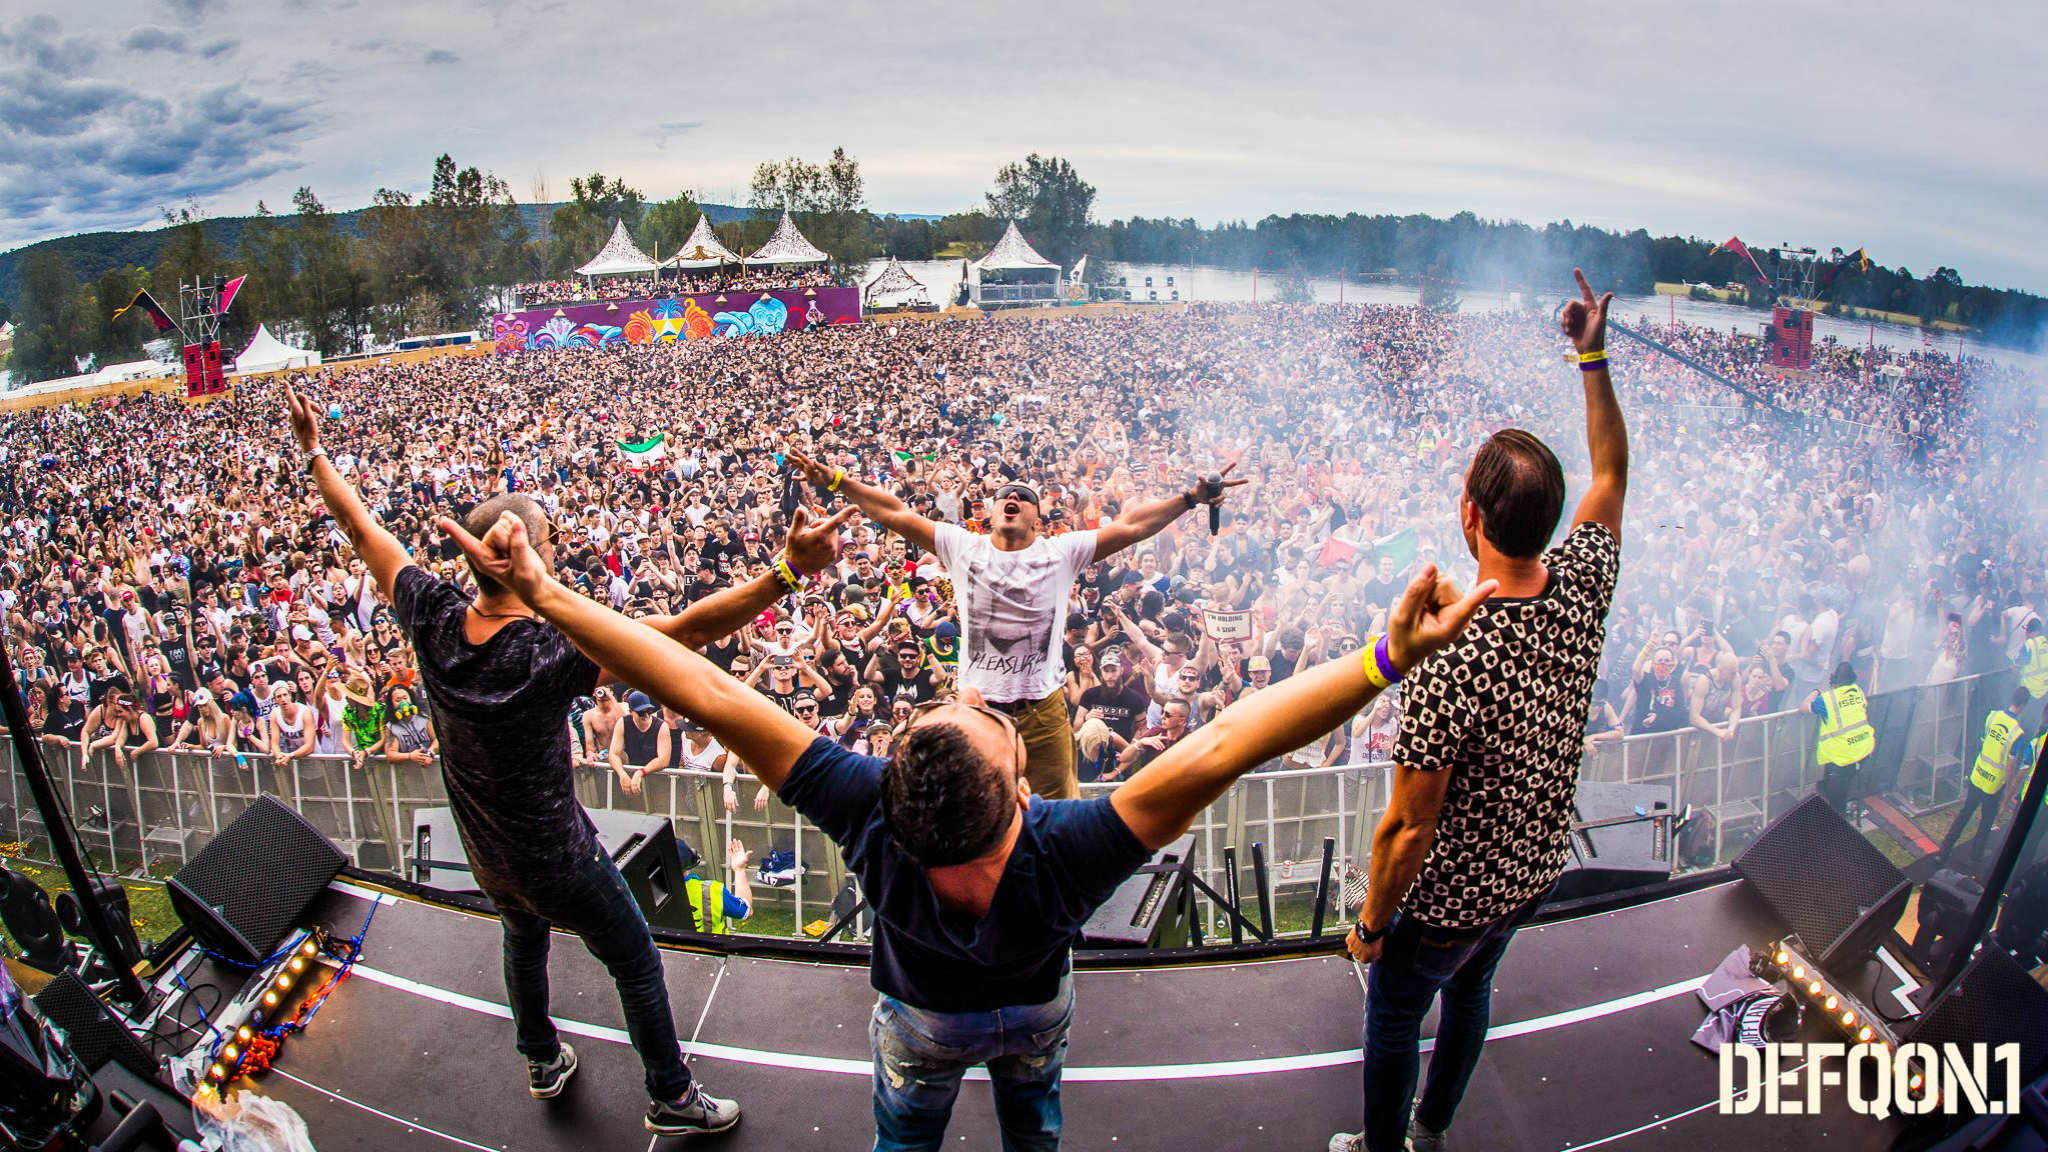 I Lost My Defqon 1 Virginity In Penrith & It Was Nothing